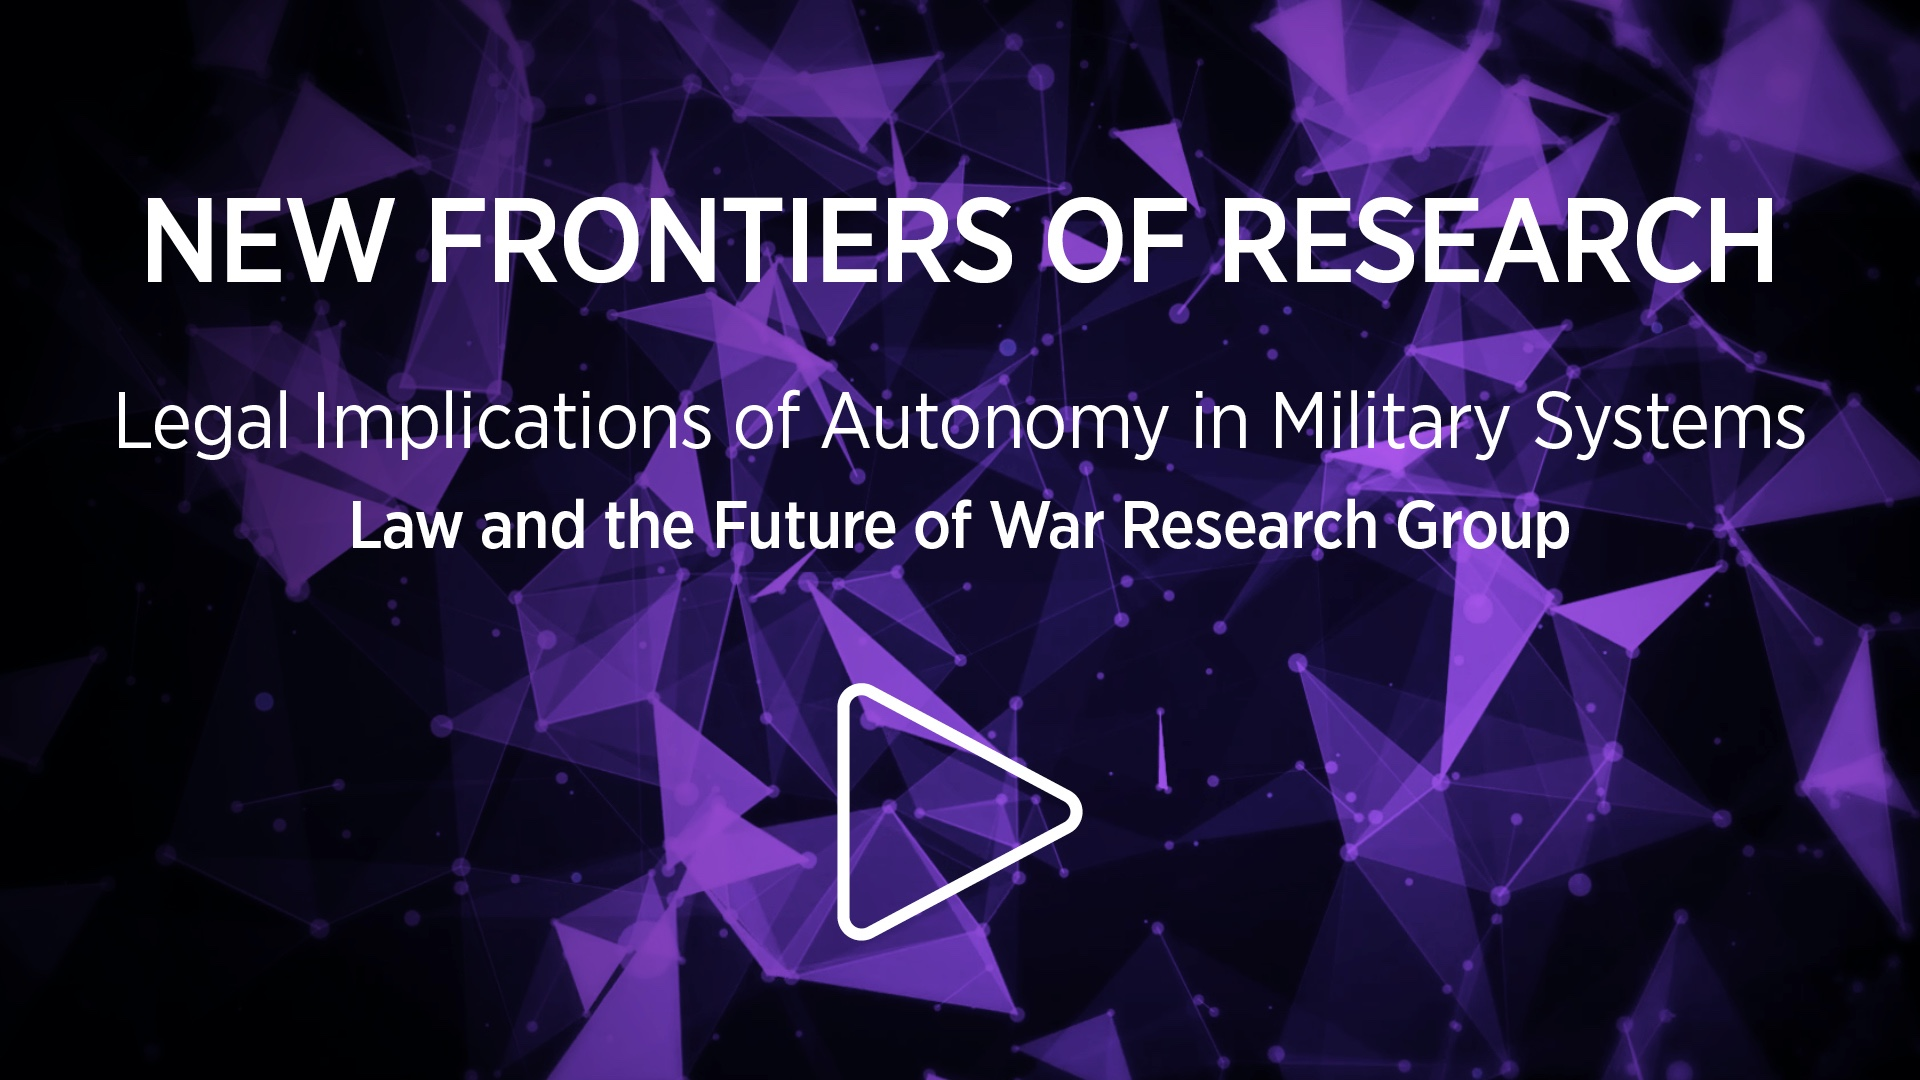 Legal implications of autonomy in military systems